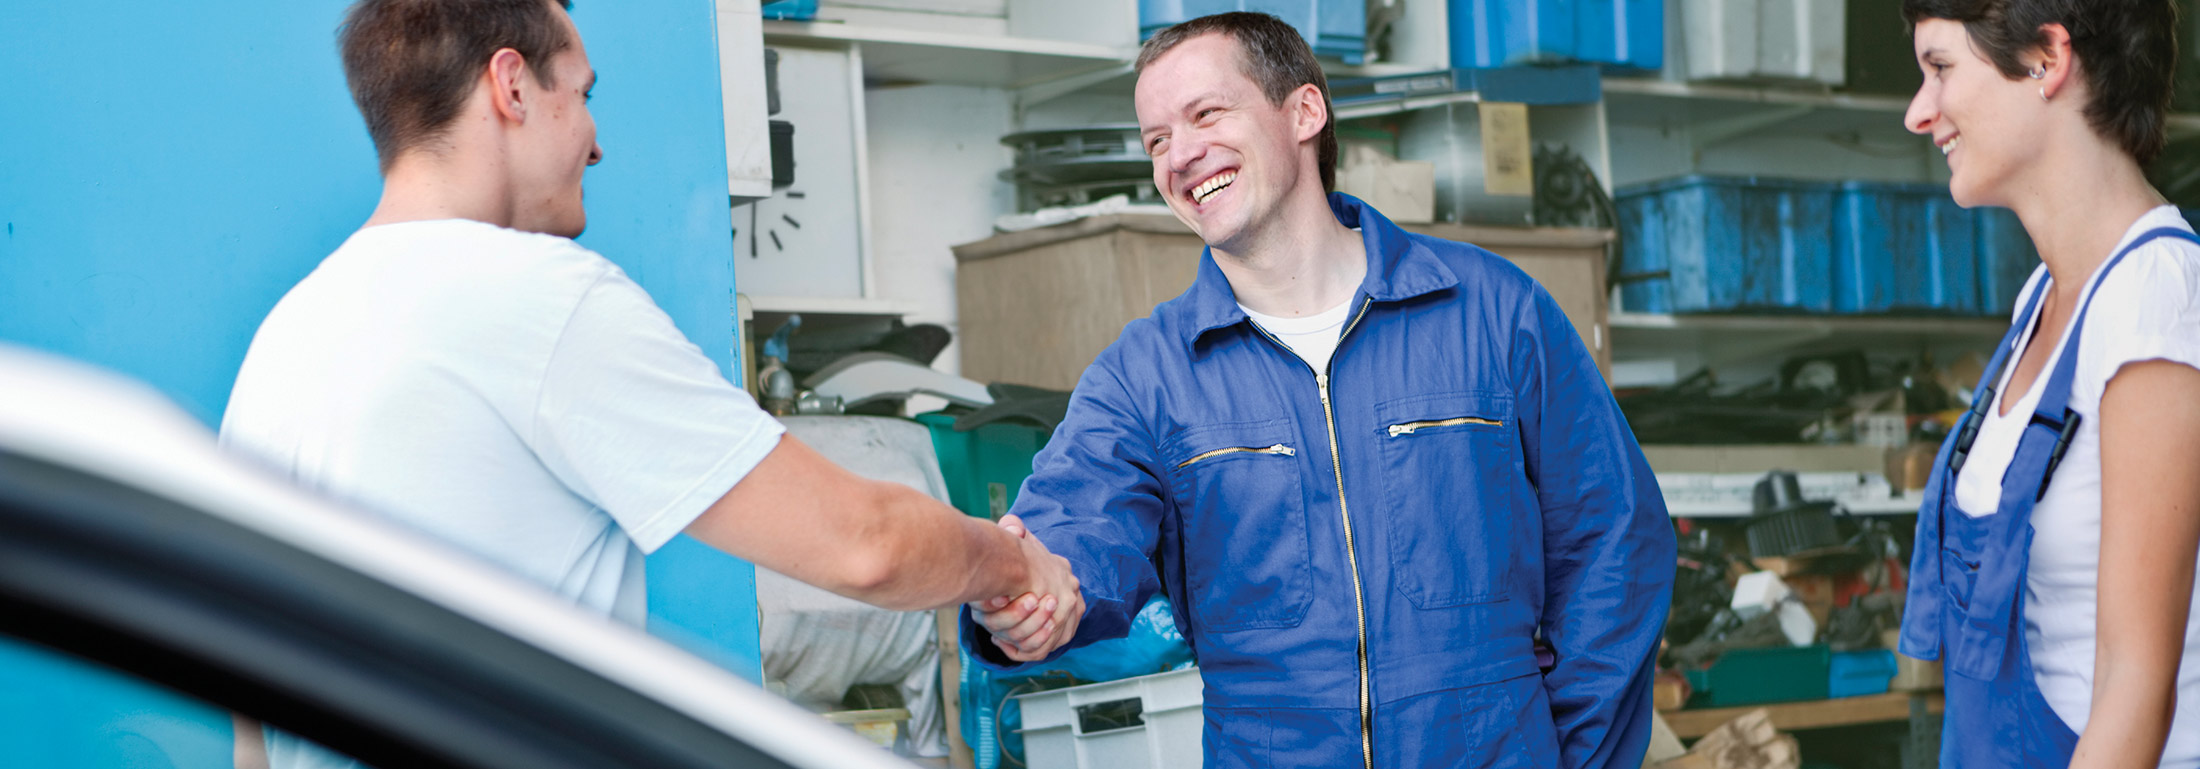 Great employee engagement goes hand in hand with great business performance